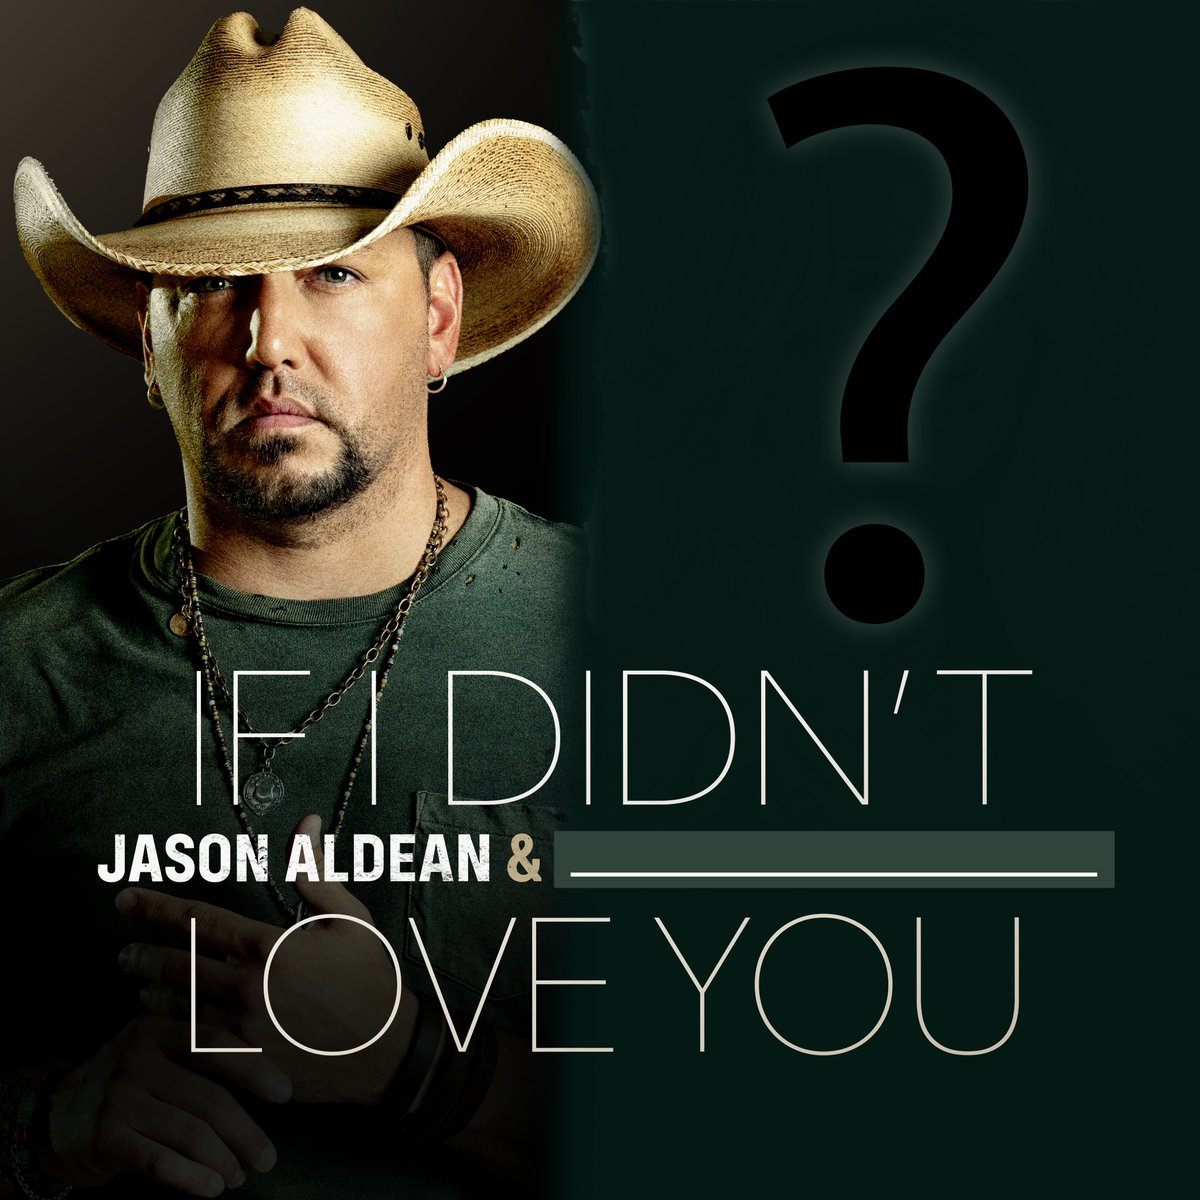 We've got a brand new song coming your way this Friday! Who do y'all think is singing on this one with me?👇 #IfIDidntLoveYou https://t.co/WUxi6jYJzF